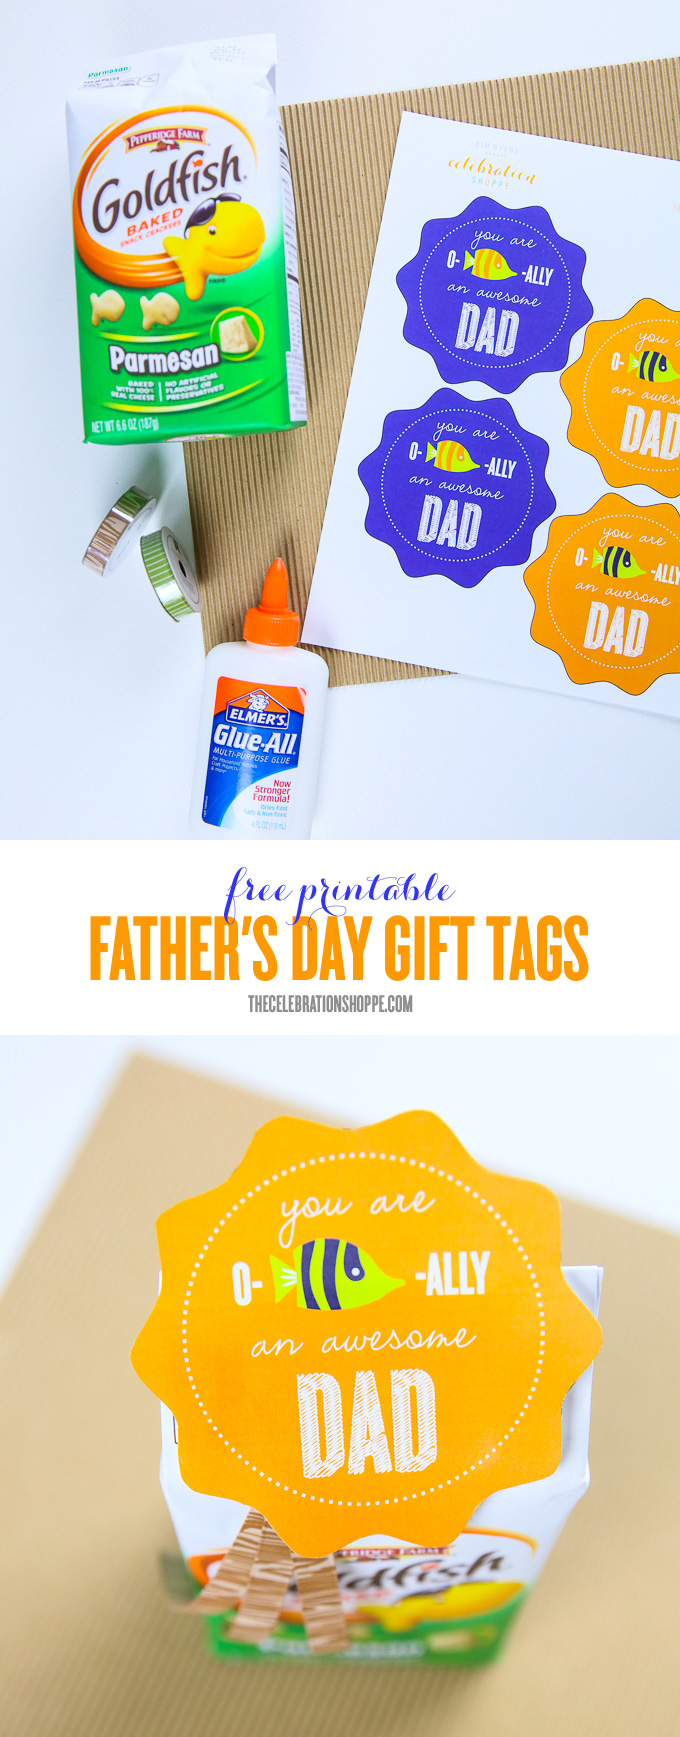 Father's Day Gift Tags | Kim Byers